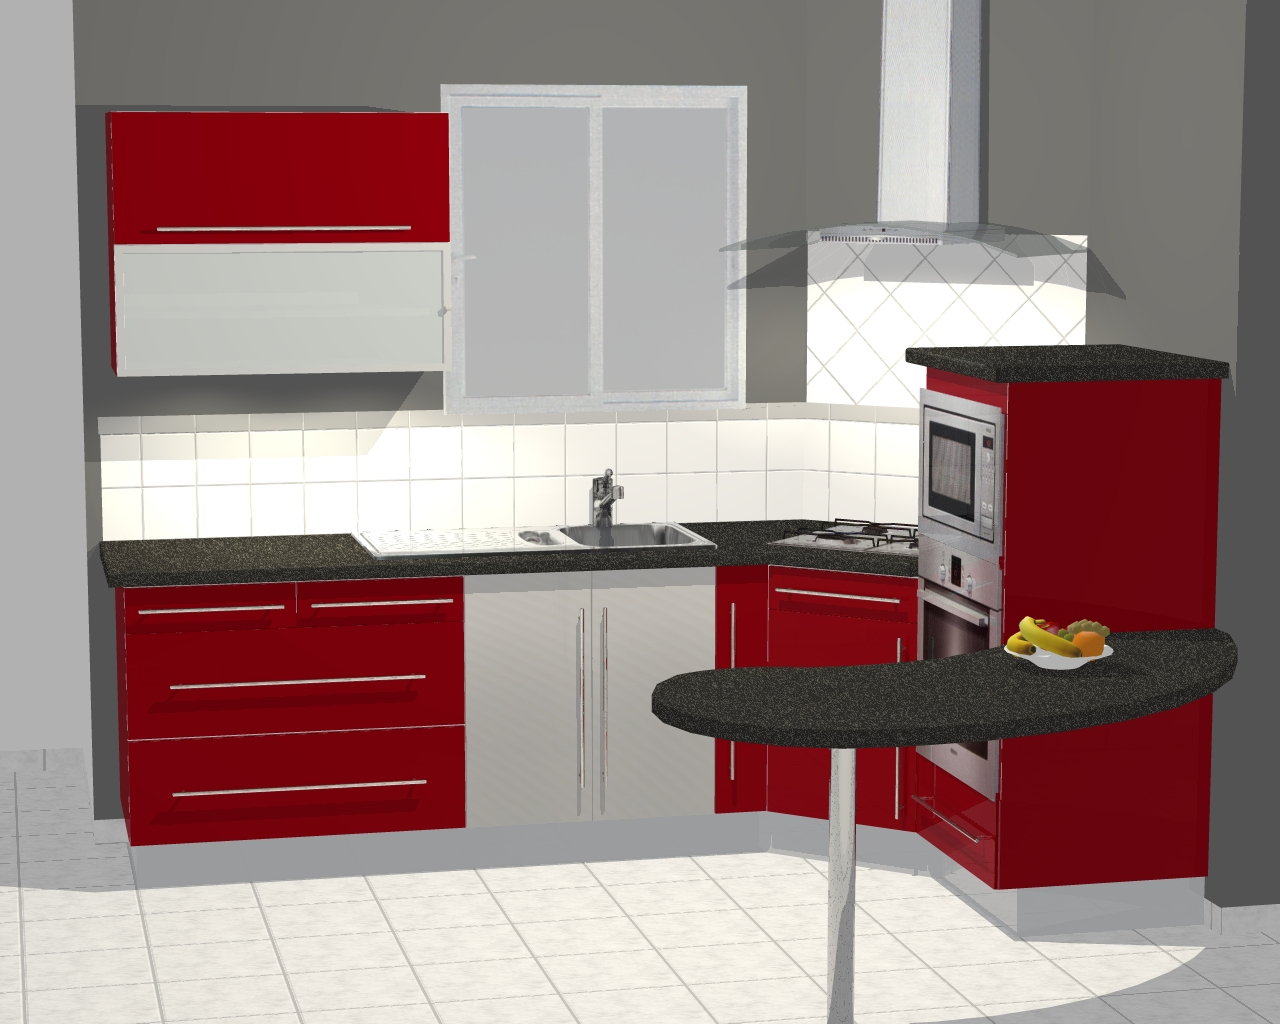 Cuisine conception 3d for Conception cuisine 3d facile